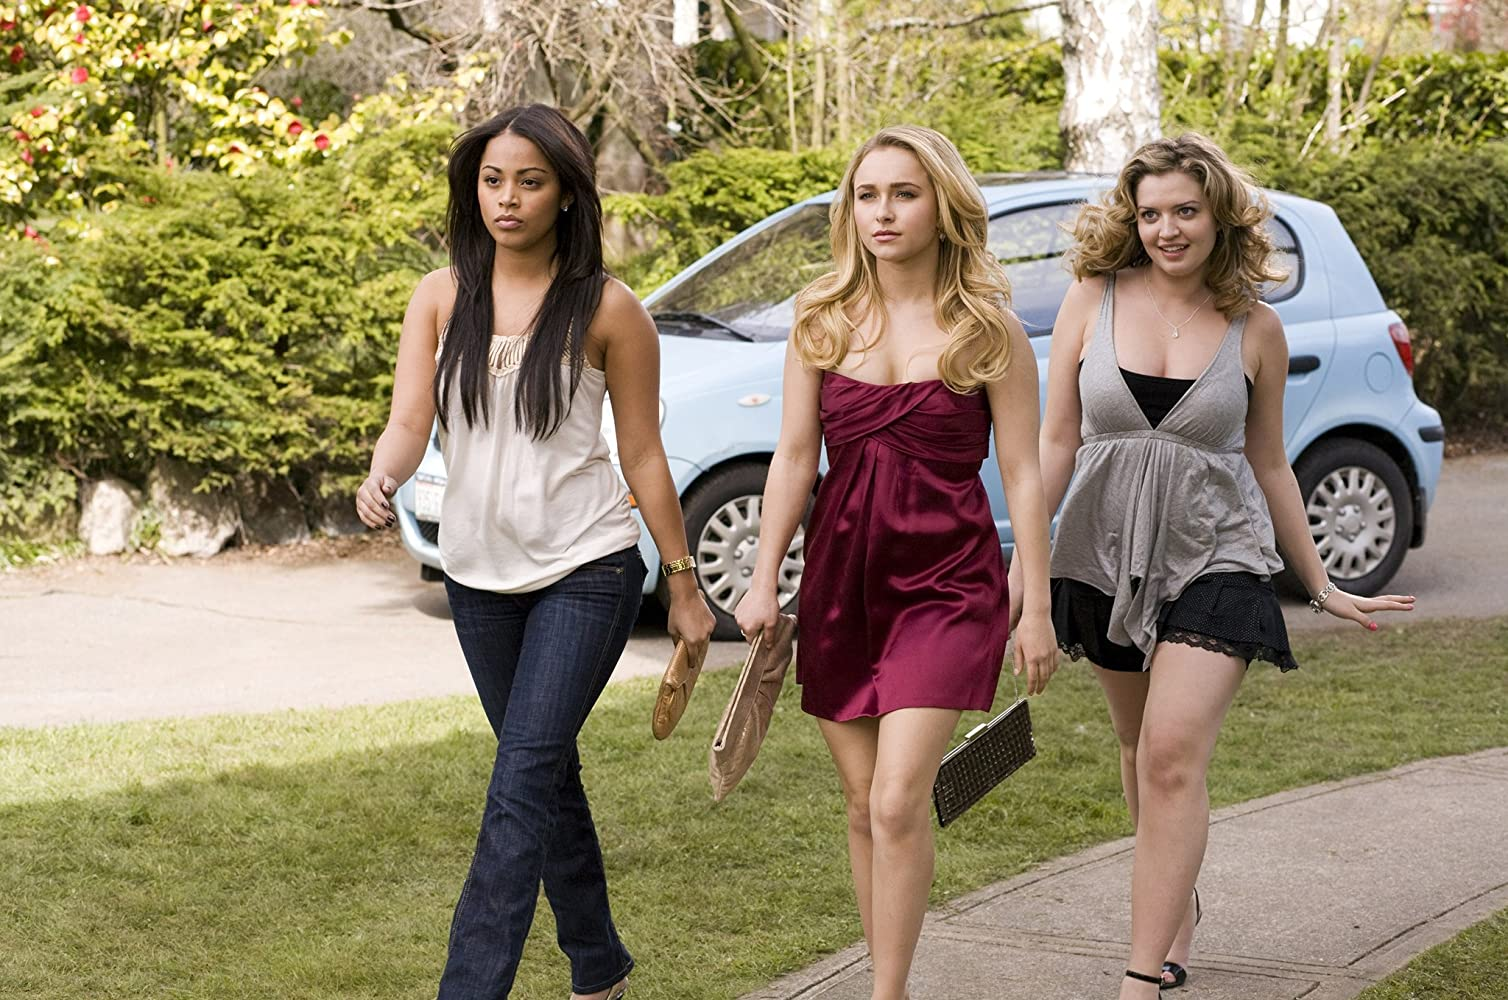 Hayden Panettiere, Lauren Storm, and Lauren London in I Love You, Beth Cooper (2009)